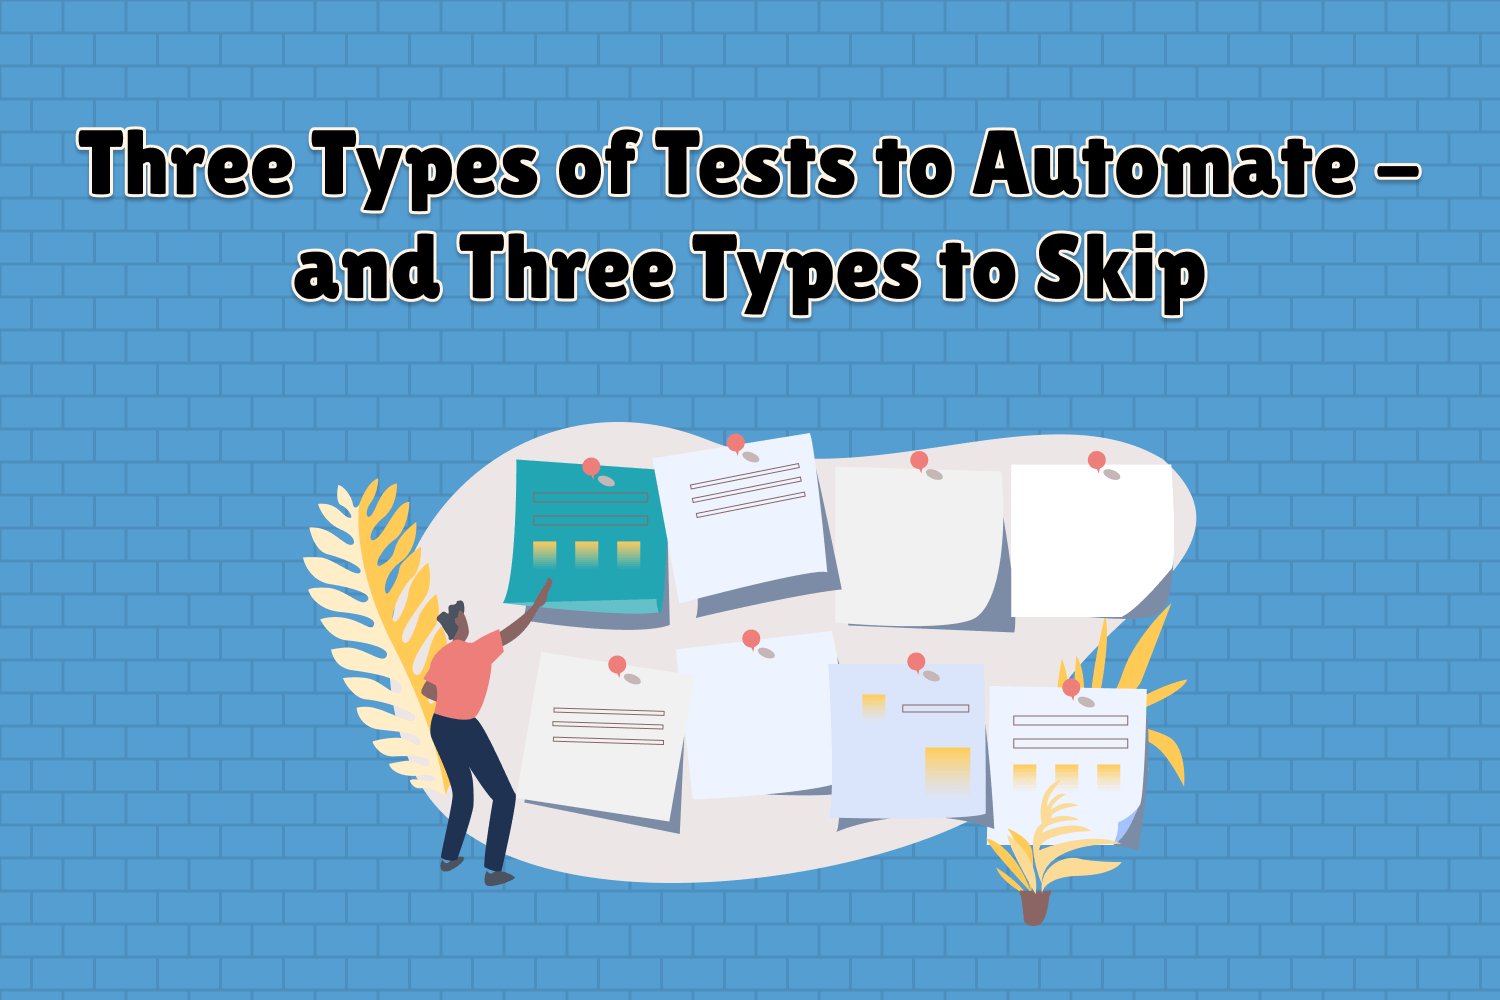 Three Types of Tests to Automate - and Three Types to Skip